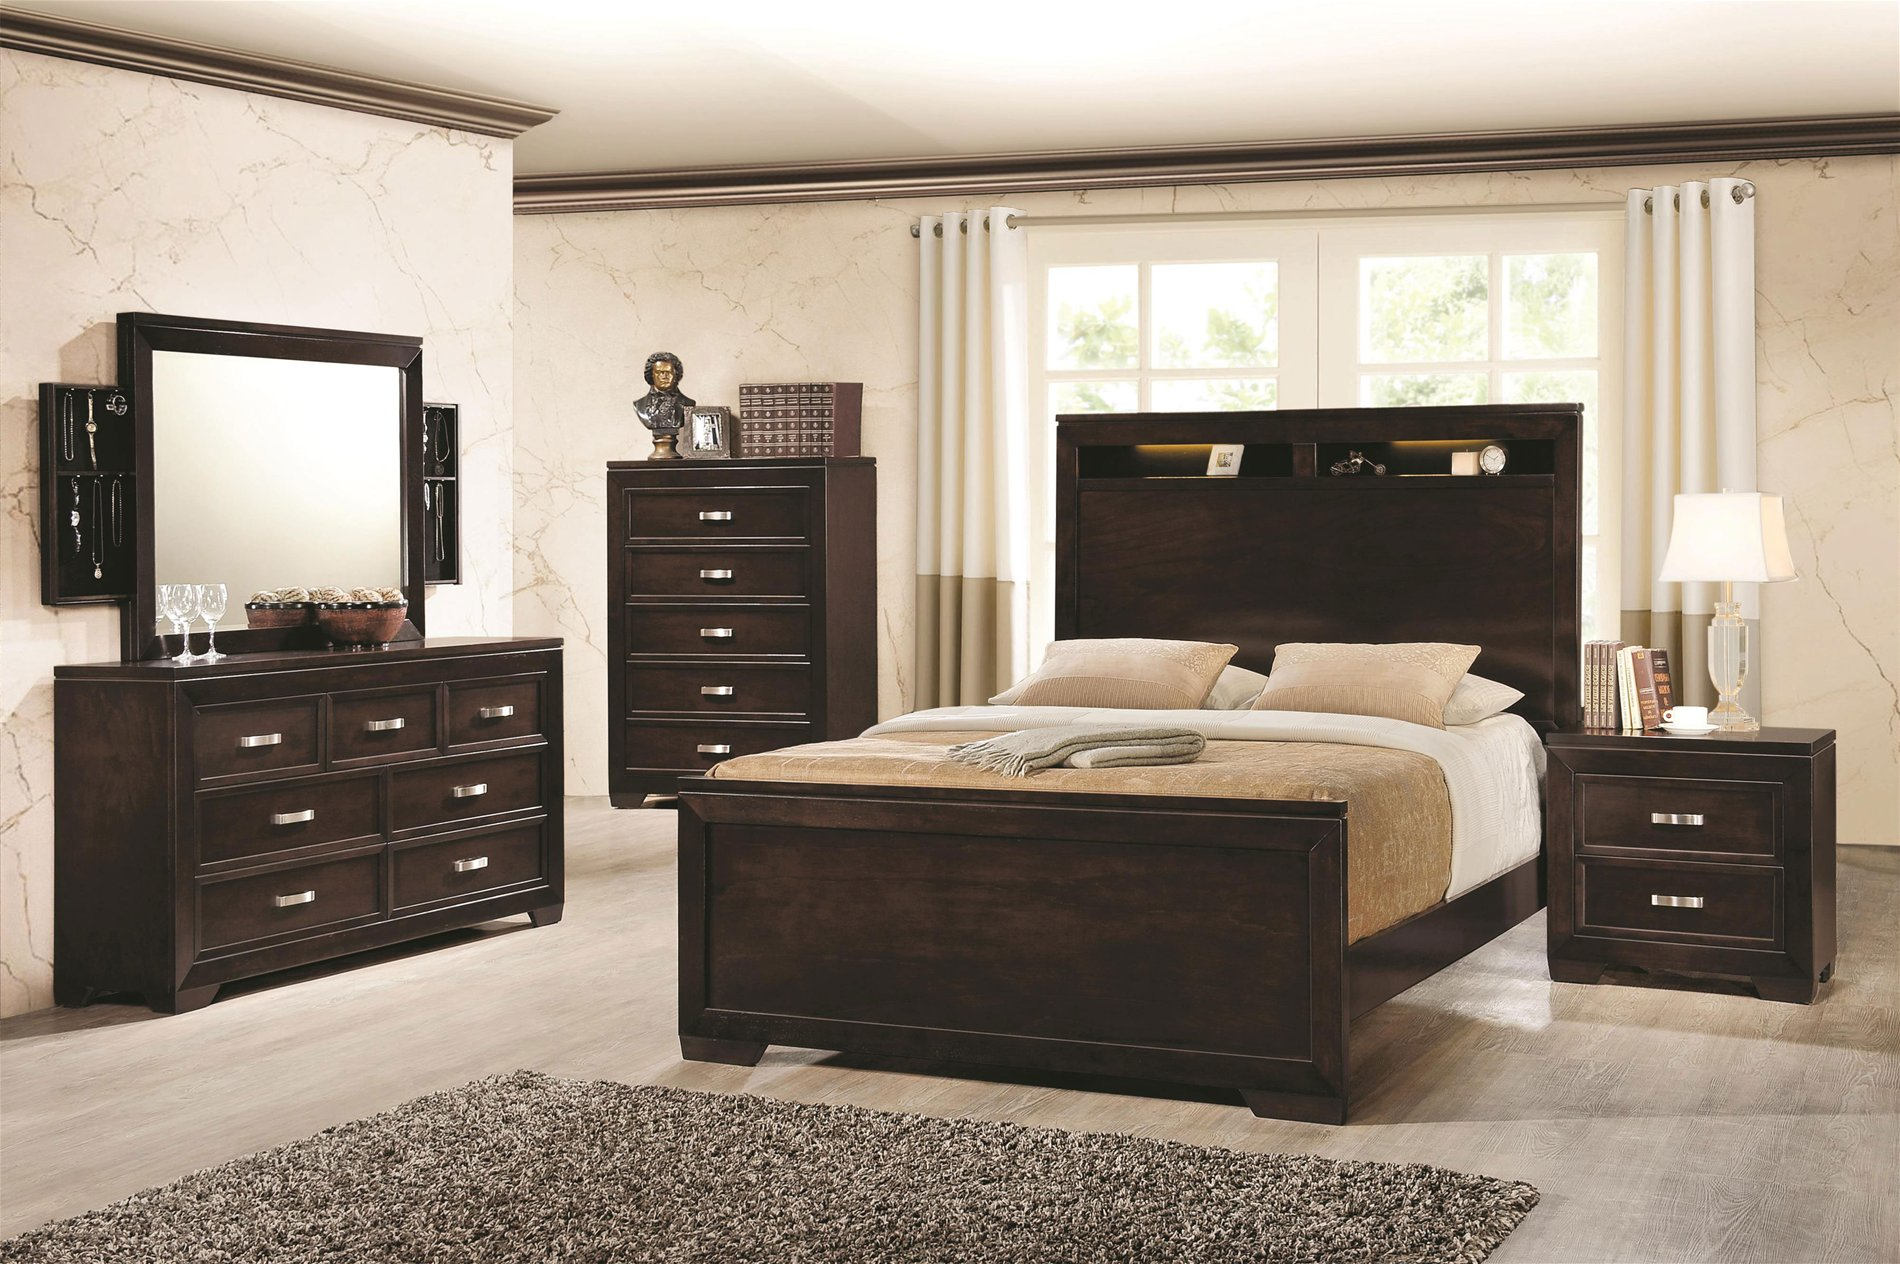 203711q solano queen bed with lighted headboard storage coah 203711q. Black Bedroom Furniture Sets. Home Design Ideas